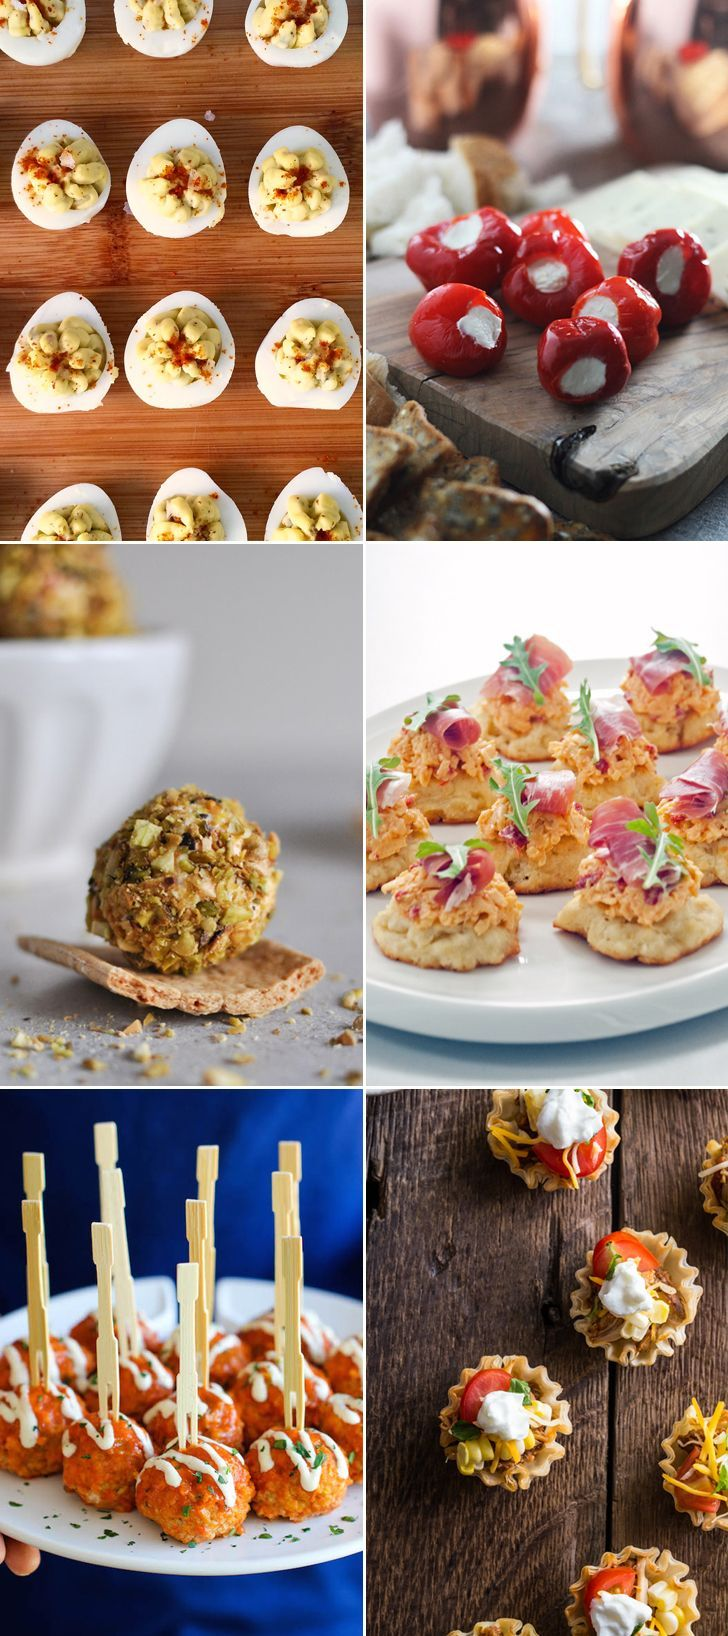 25 Finger Foods That Deserve a High Five Appetizers for